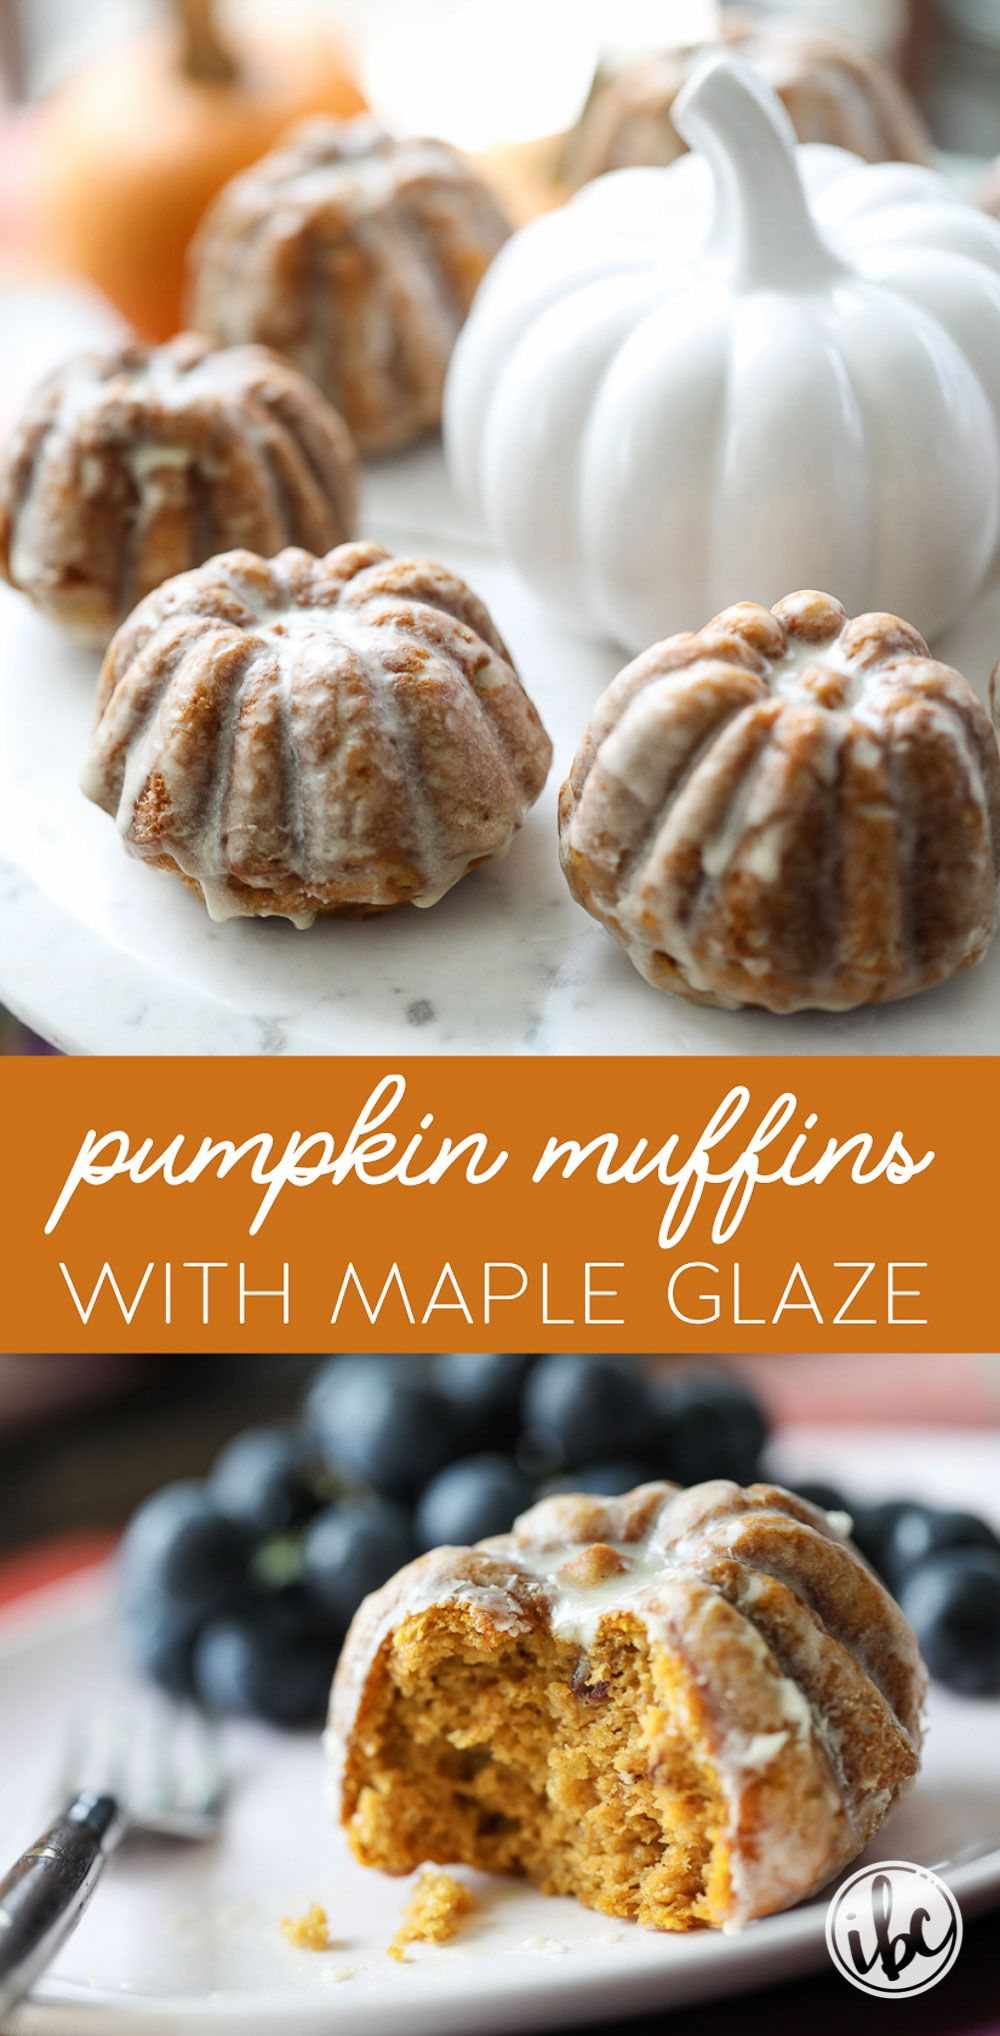 These Pumpkin Muffins with Maple Glaze make the perfect fall breakfast, brunch, or dessert treat. #pumpkin #muffins #maple #breakfast #dessert #pumpkinspice #recipe via @inspiredbycharm #pumpkinmuffins